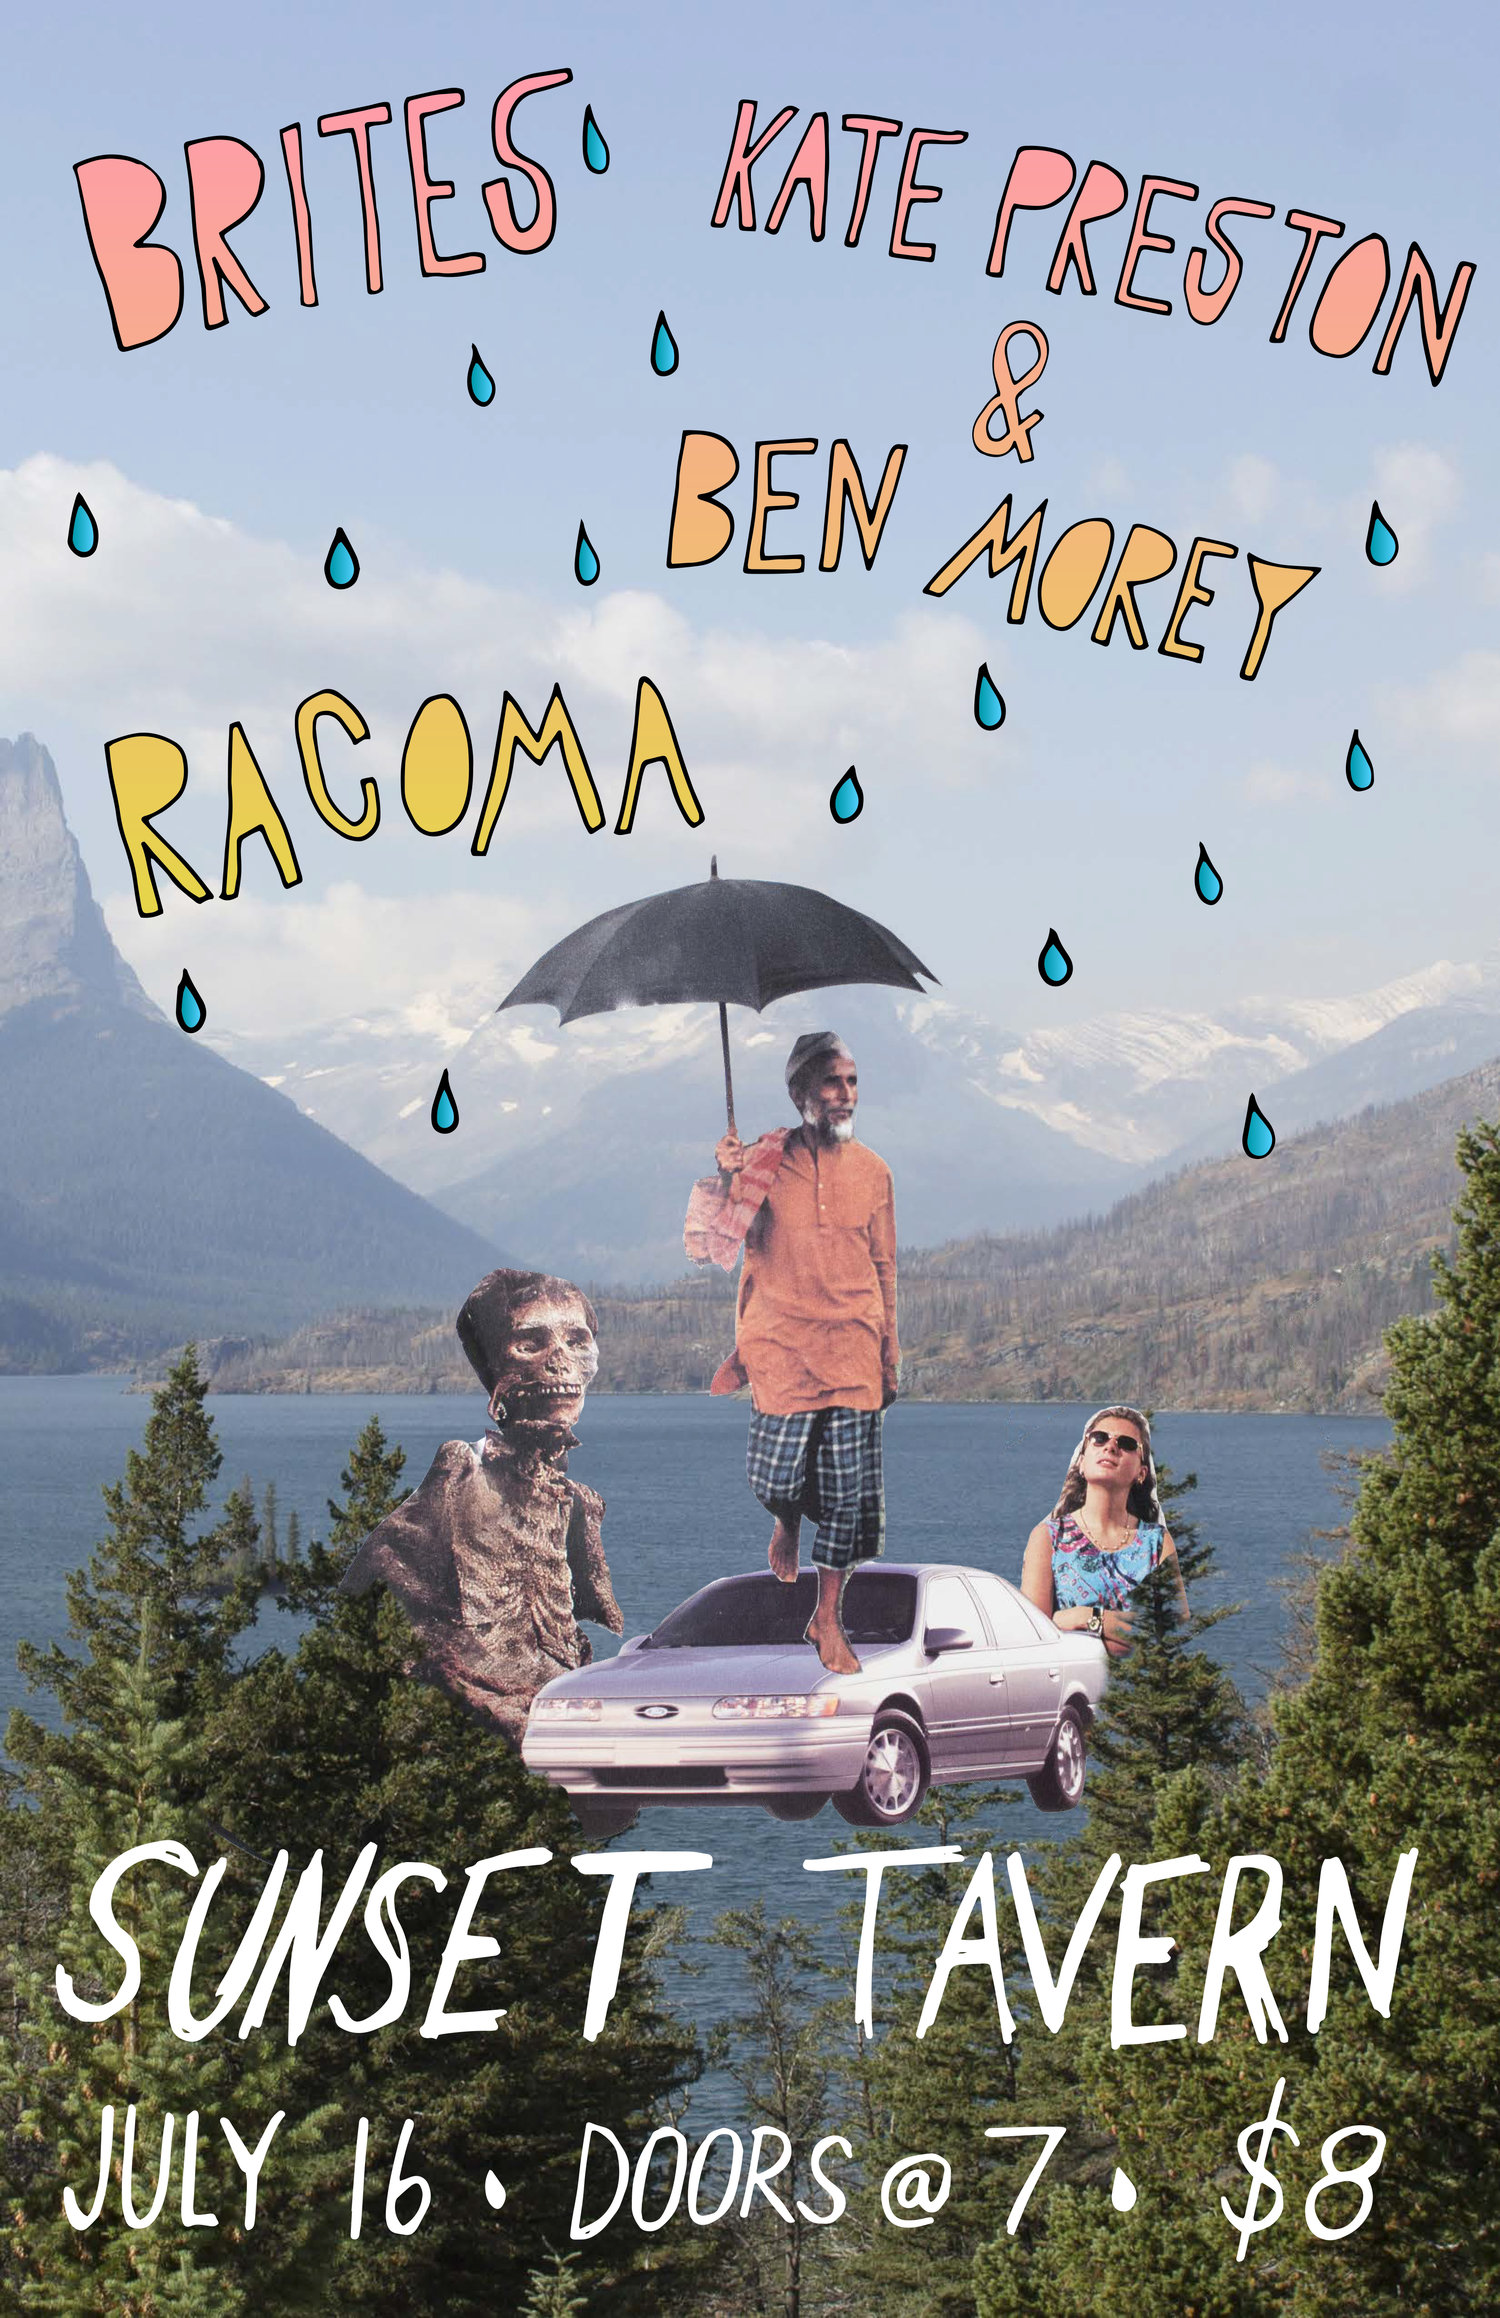 Brites, Kate Preston & Ben Morey, Racoma @ The Sunset